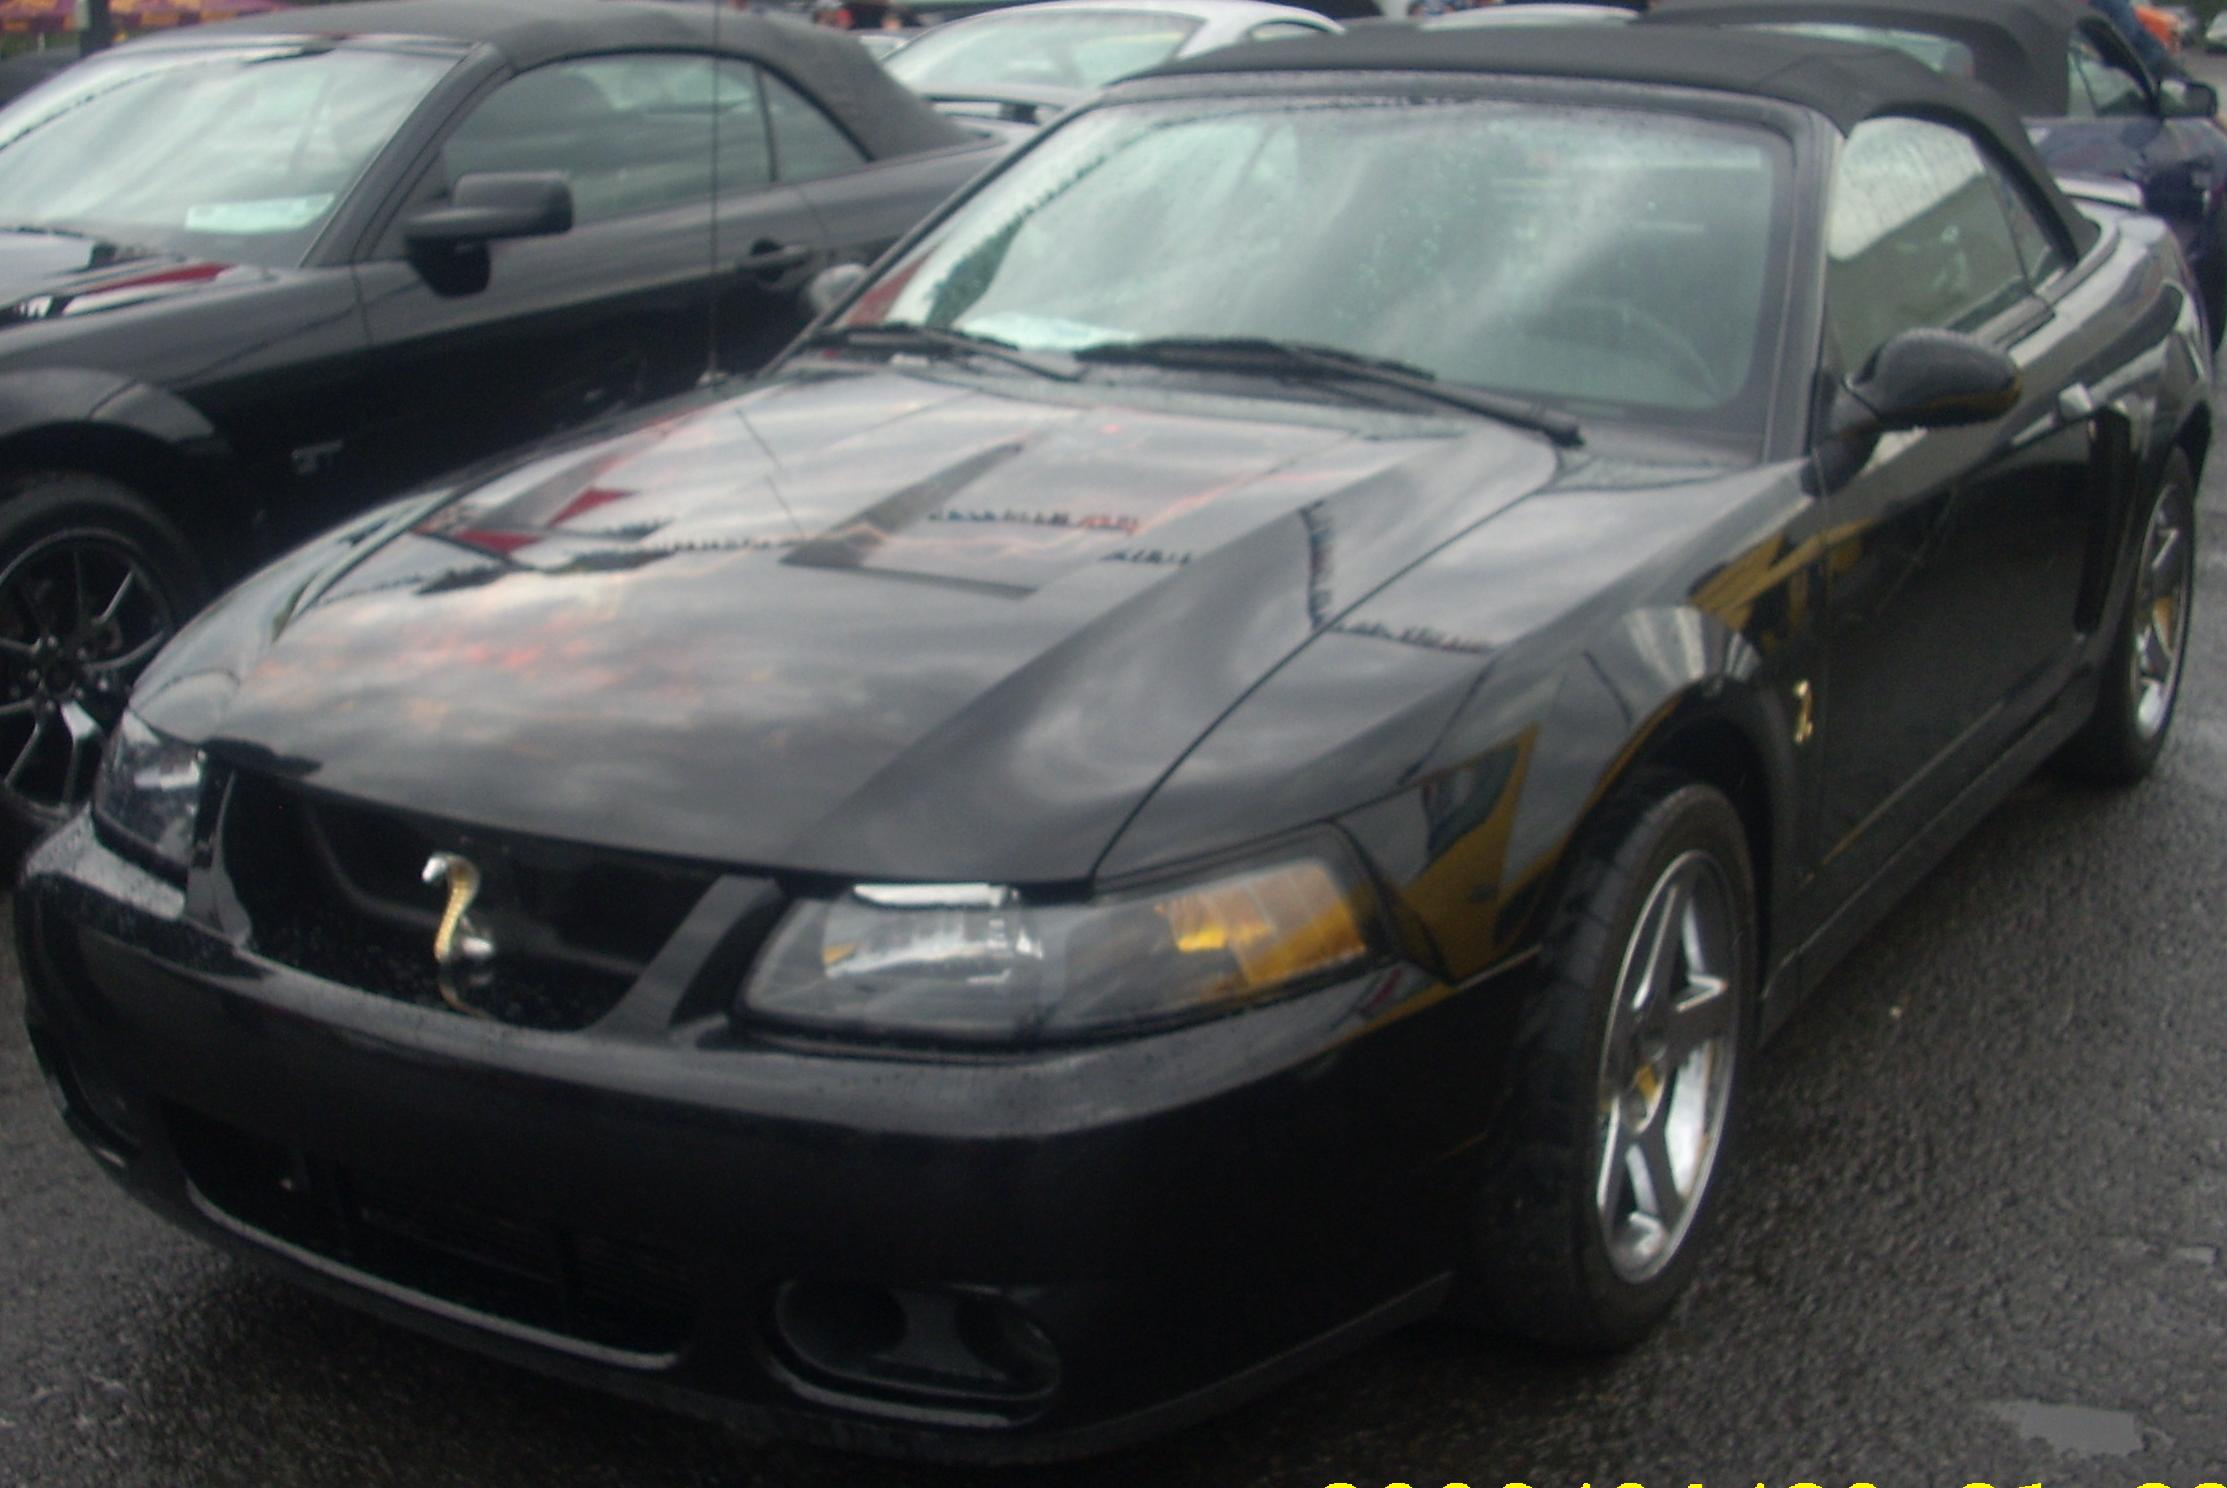 File:Tuned SN95 Ford Cobra Mustang Convertible (Sterling Ford).jpg ...